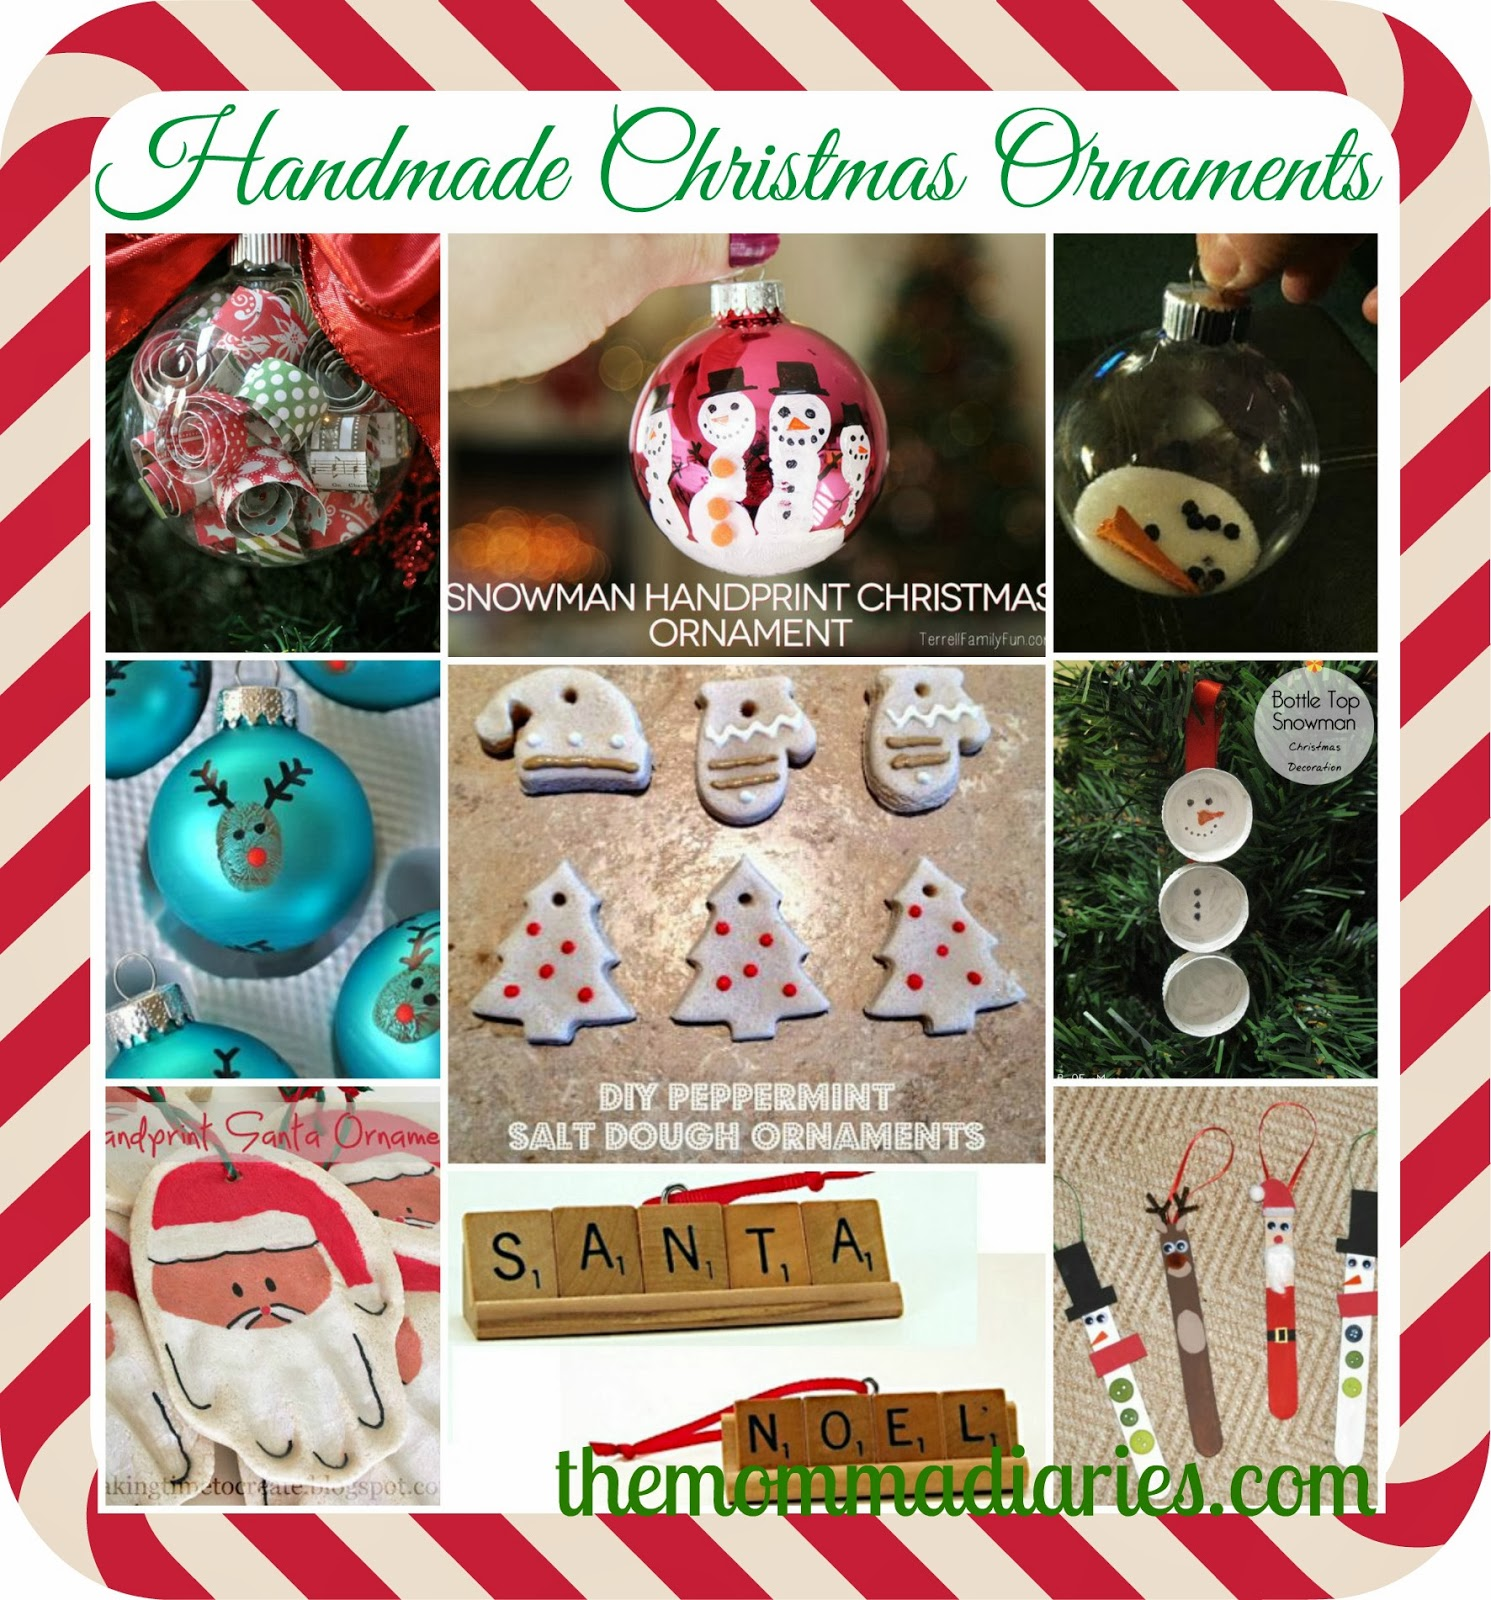 #handmade #christmas #ornaments